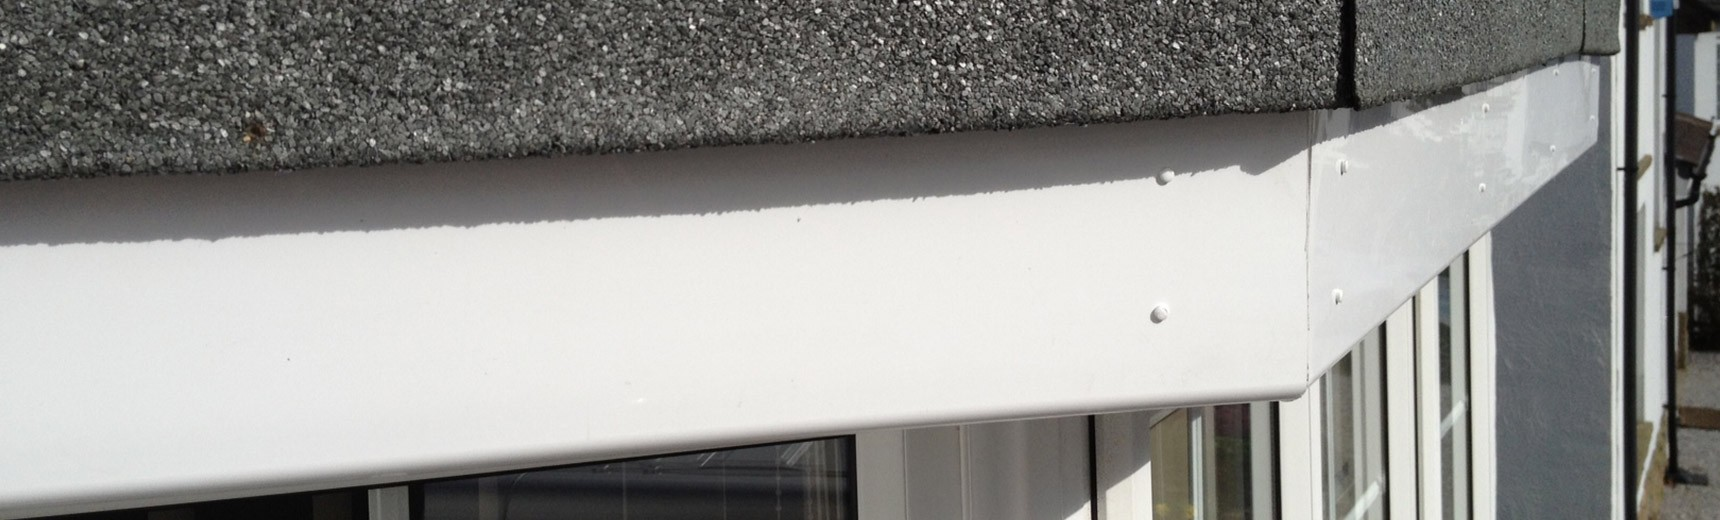 PVC roofline maintenance Sheffield